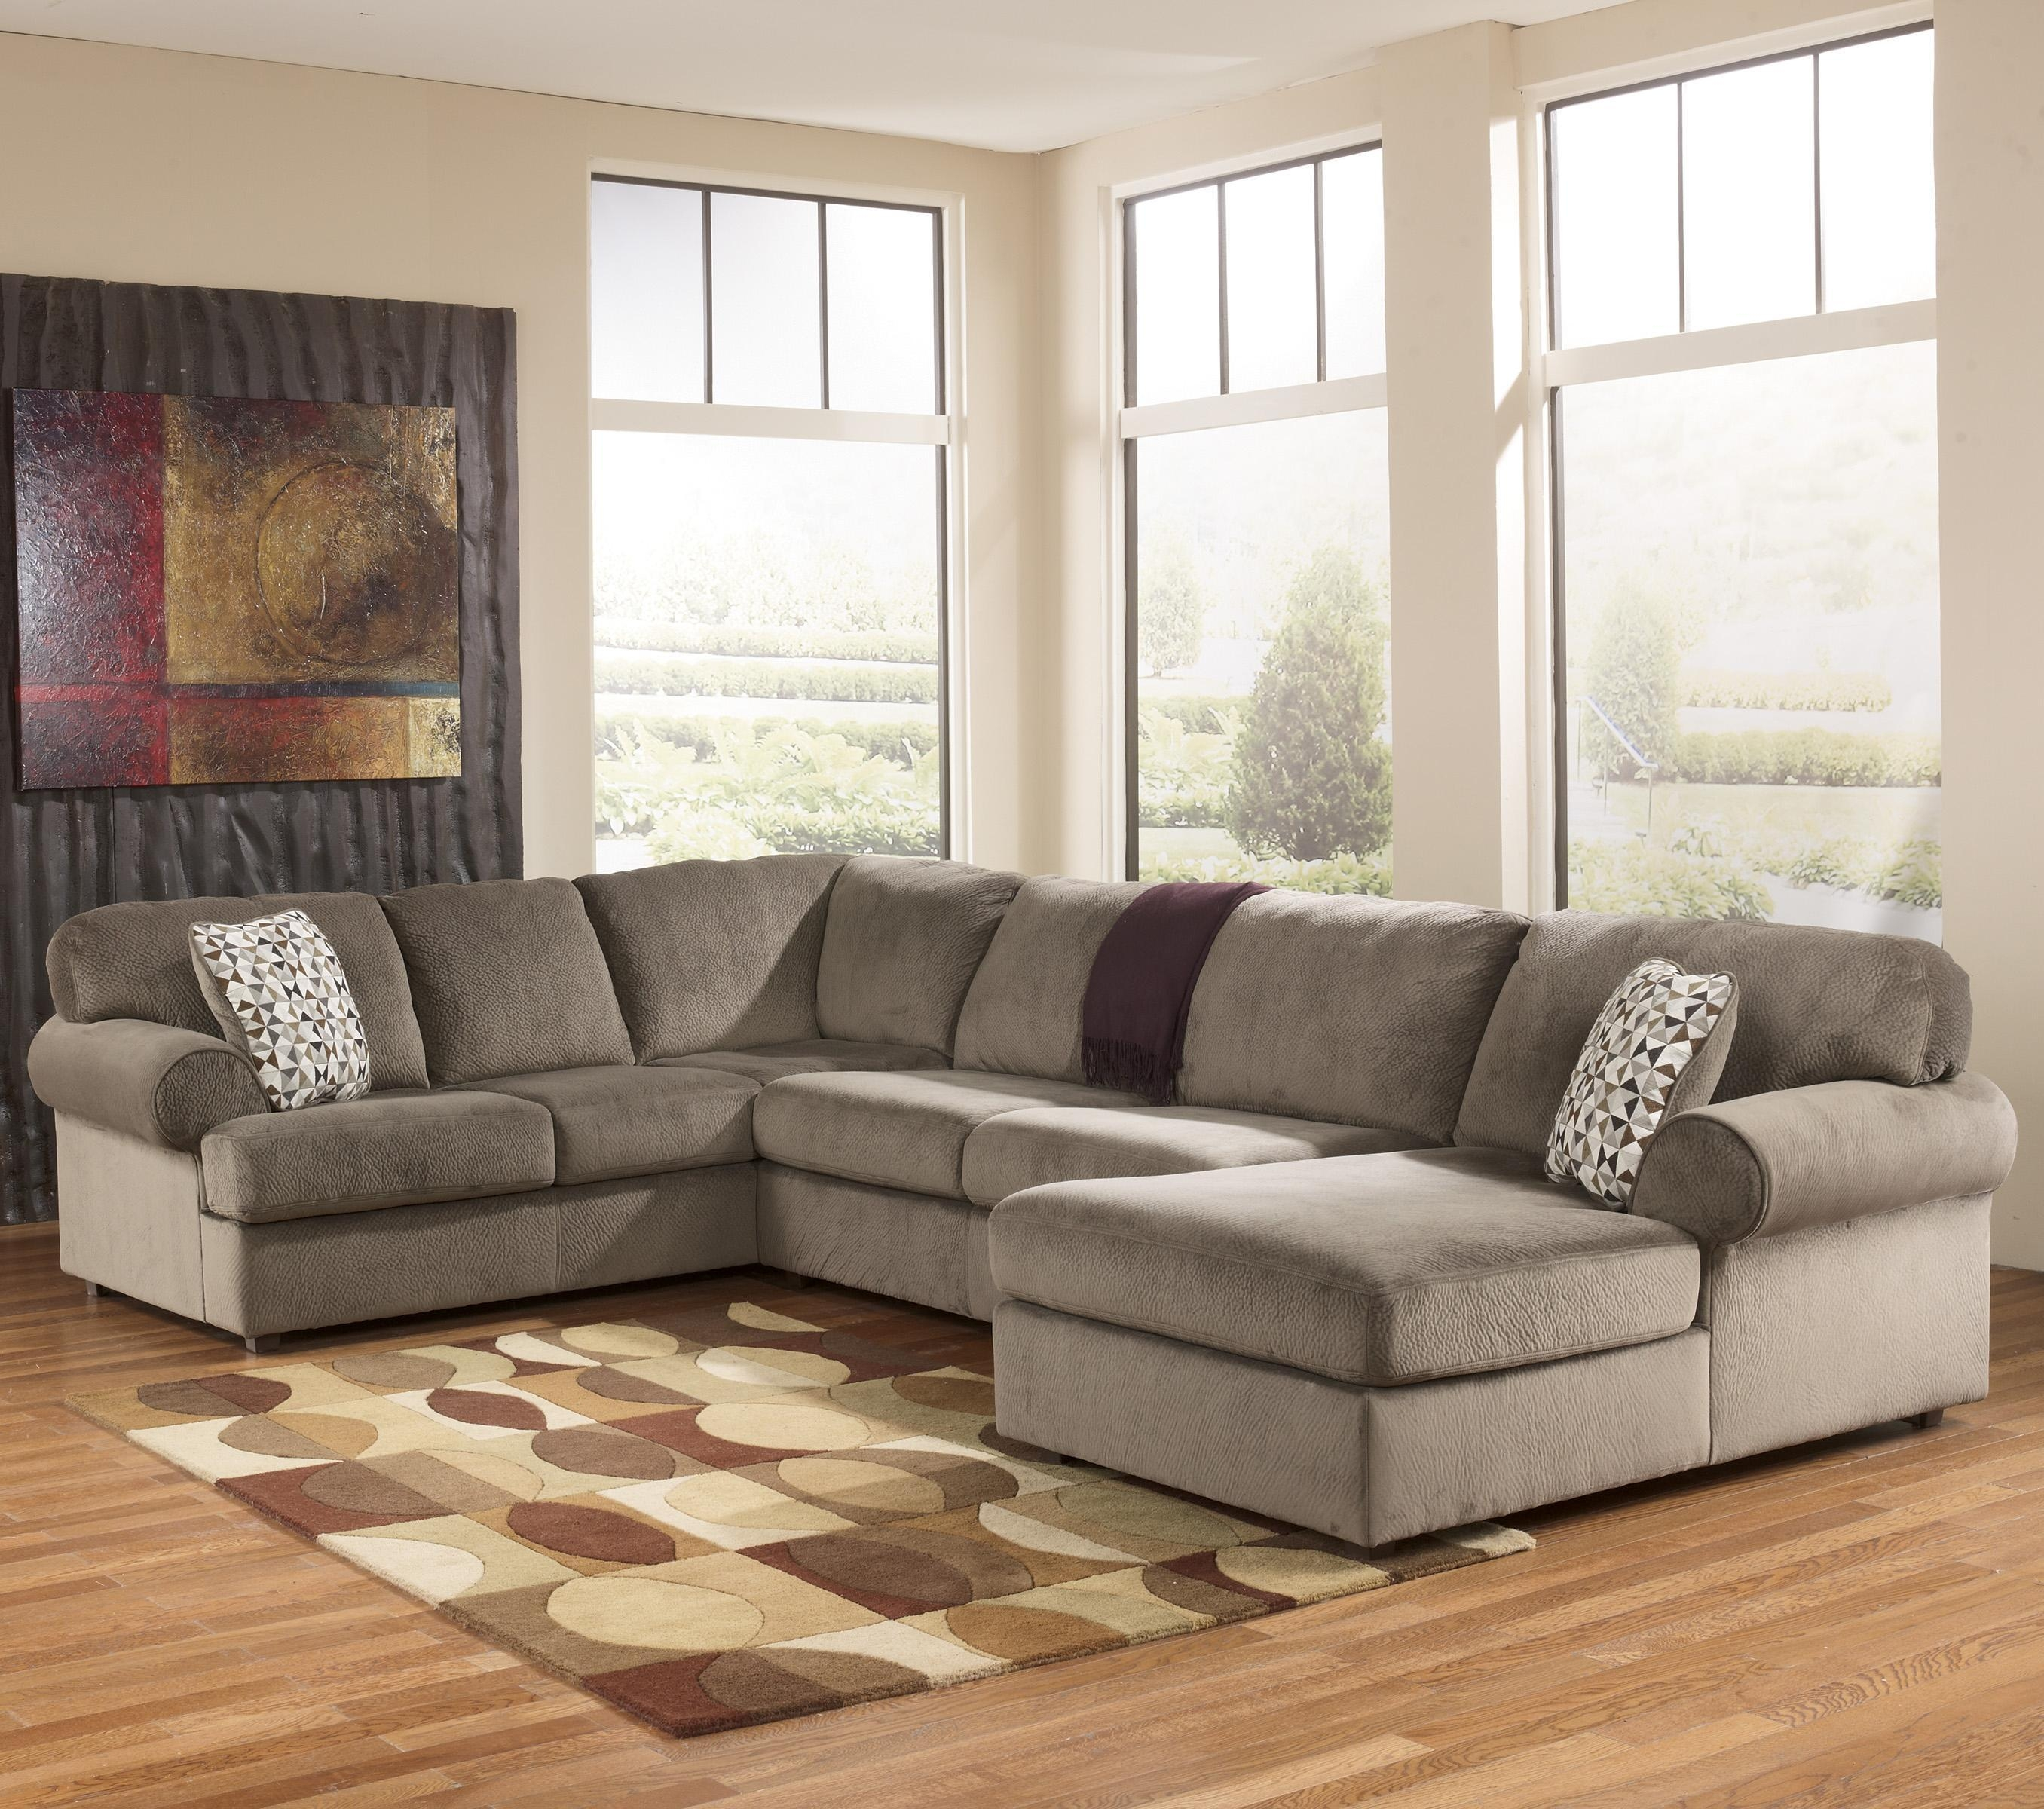 Sofas Center : Ashley Furniture Sectionals Sectional Couch Gray In Ashley Furniture Brown Corduroy Sectional Sofas (View 5 of 20)